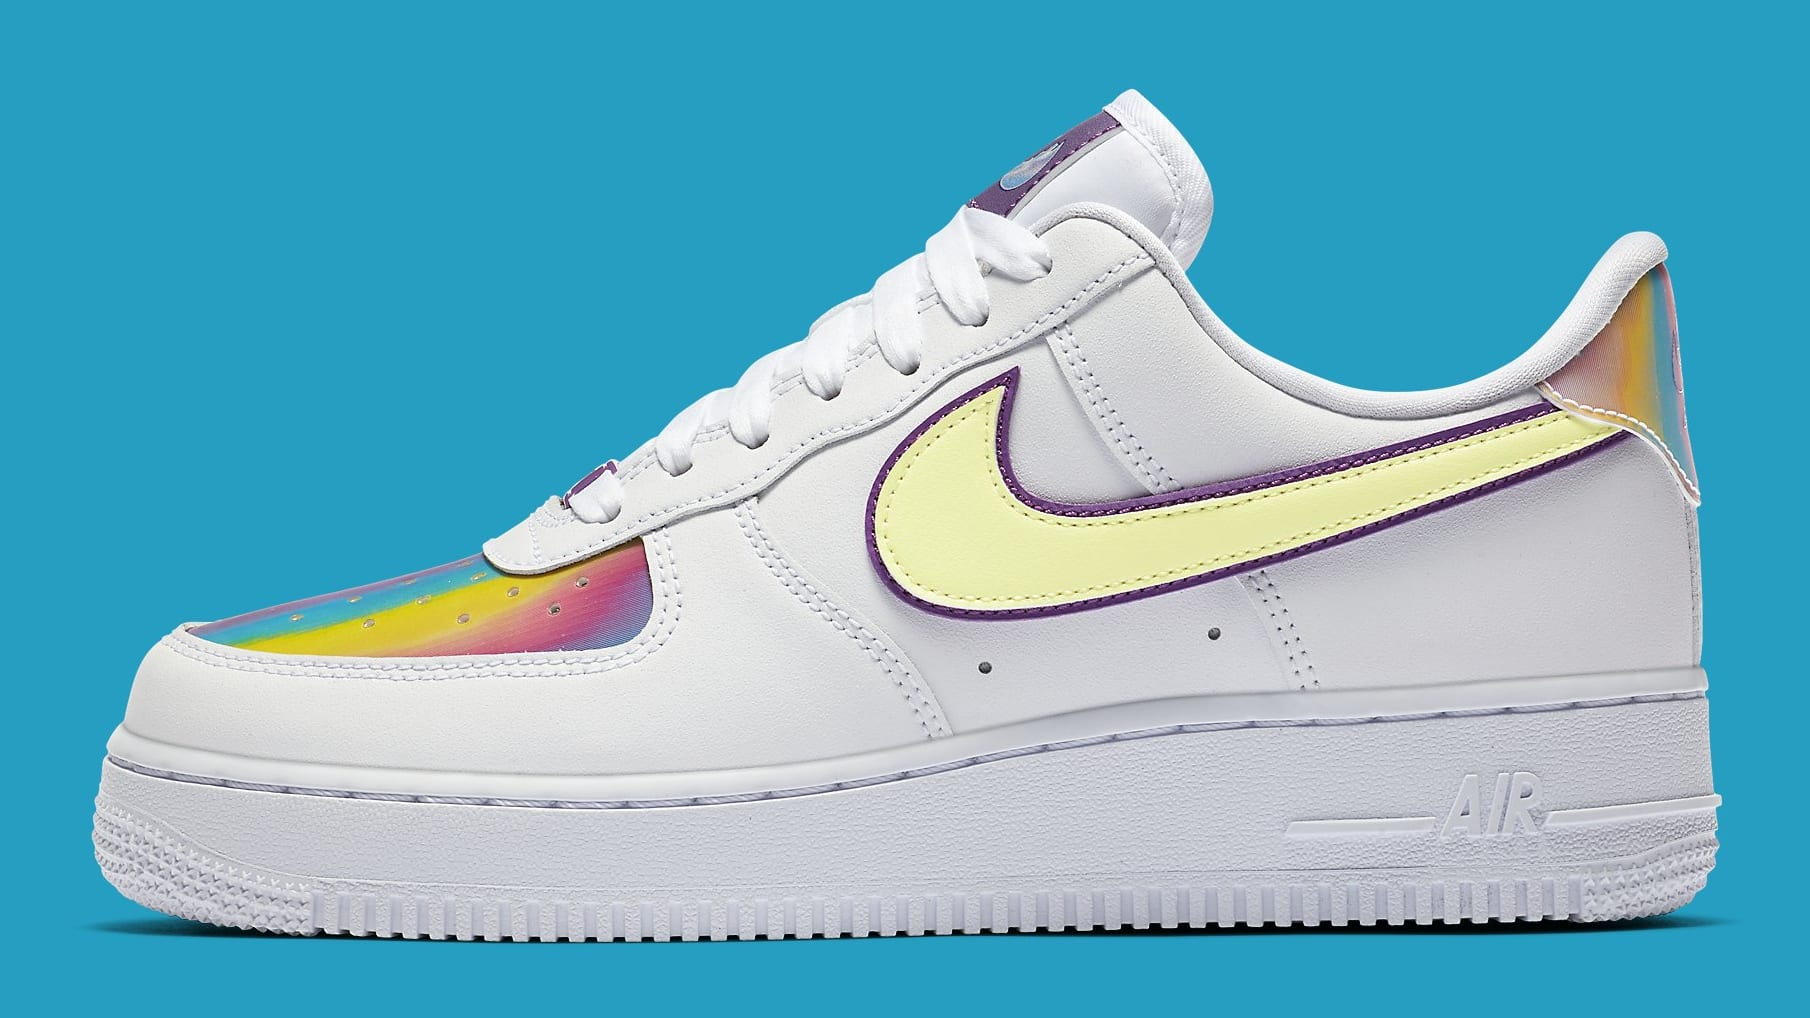 Nike Air Force 1 Low Easter 2020 Release Date CW0367-100 ...